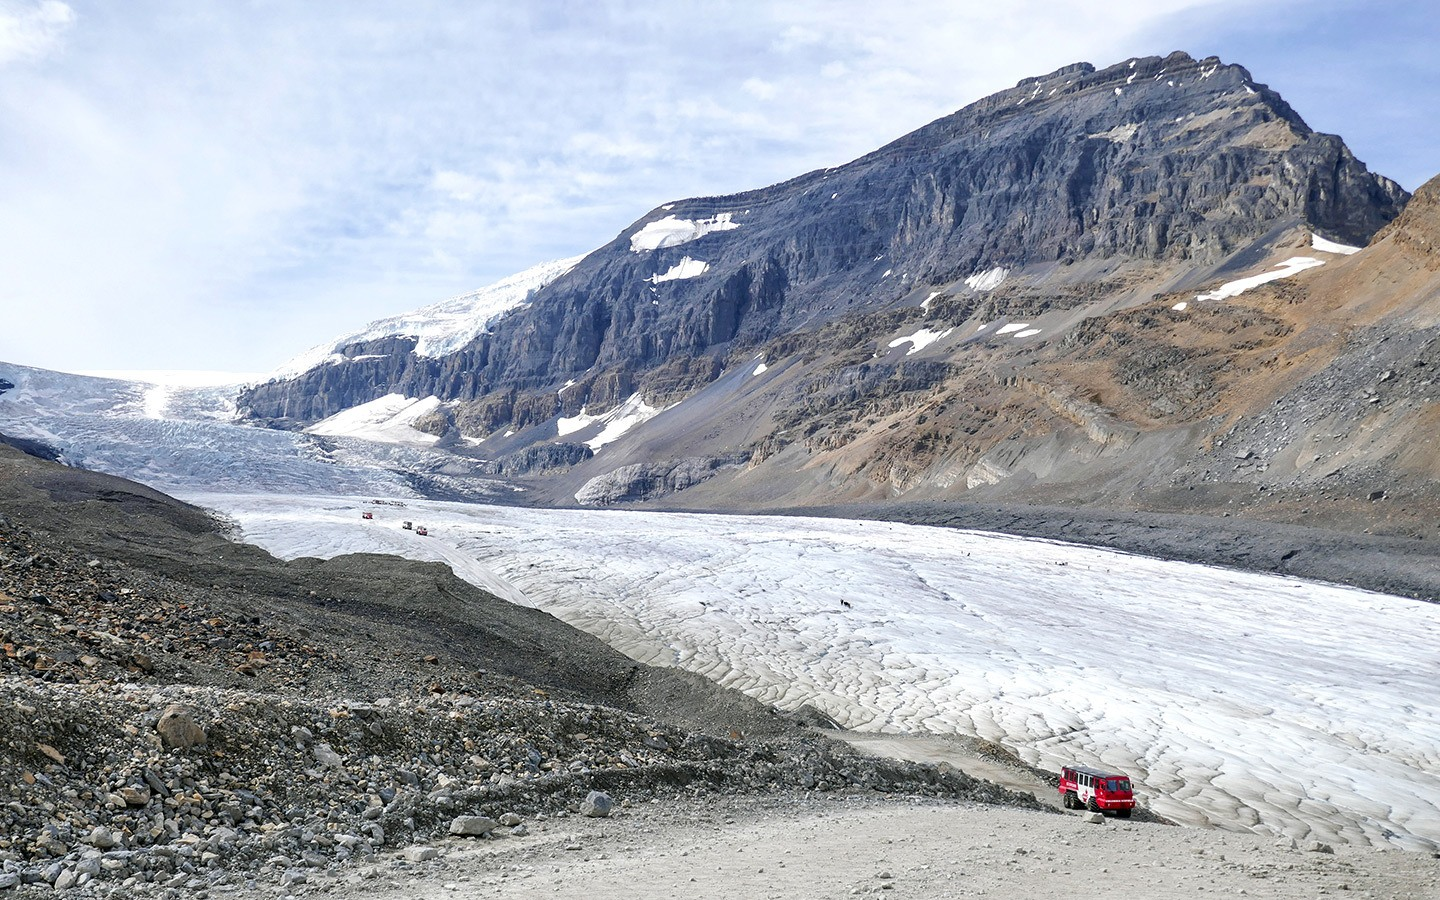 A Columbia Icefields tour in the Canadian Rockies – on board an ice explorer for a glacier walk on the surface of the Athabasca Glacier.